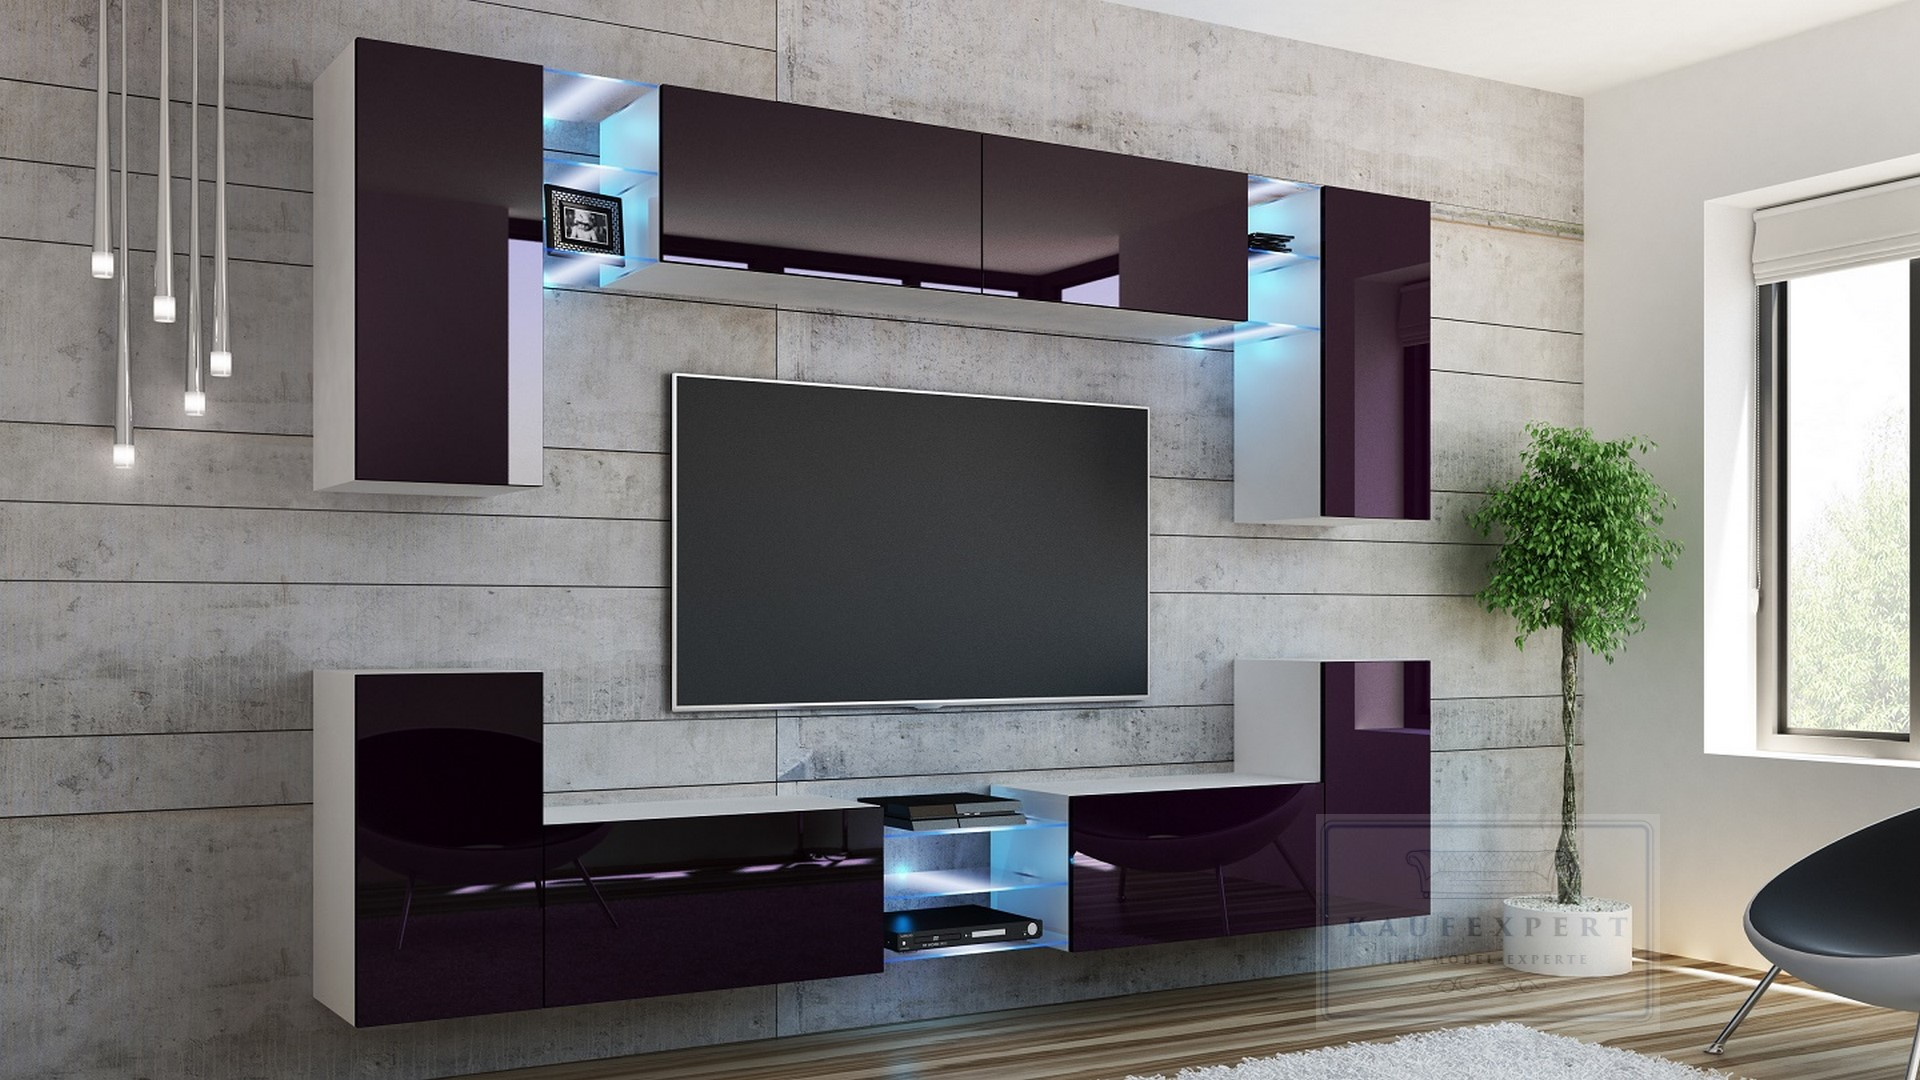 kaufexpert wohnwand galaxy aubergine hochglanz wei mediawand medienwand design modern led. Black Bedroom Furniture Sets. Home Design Ideas